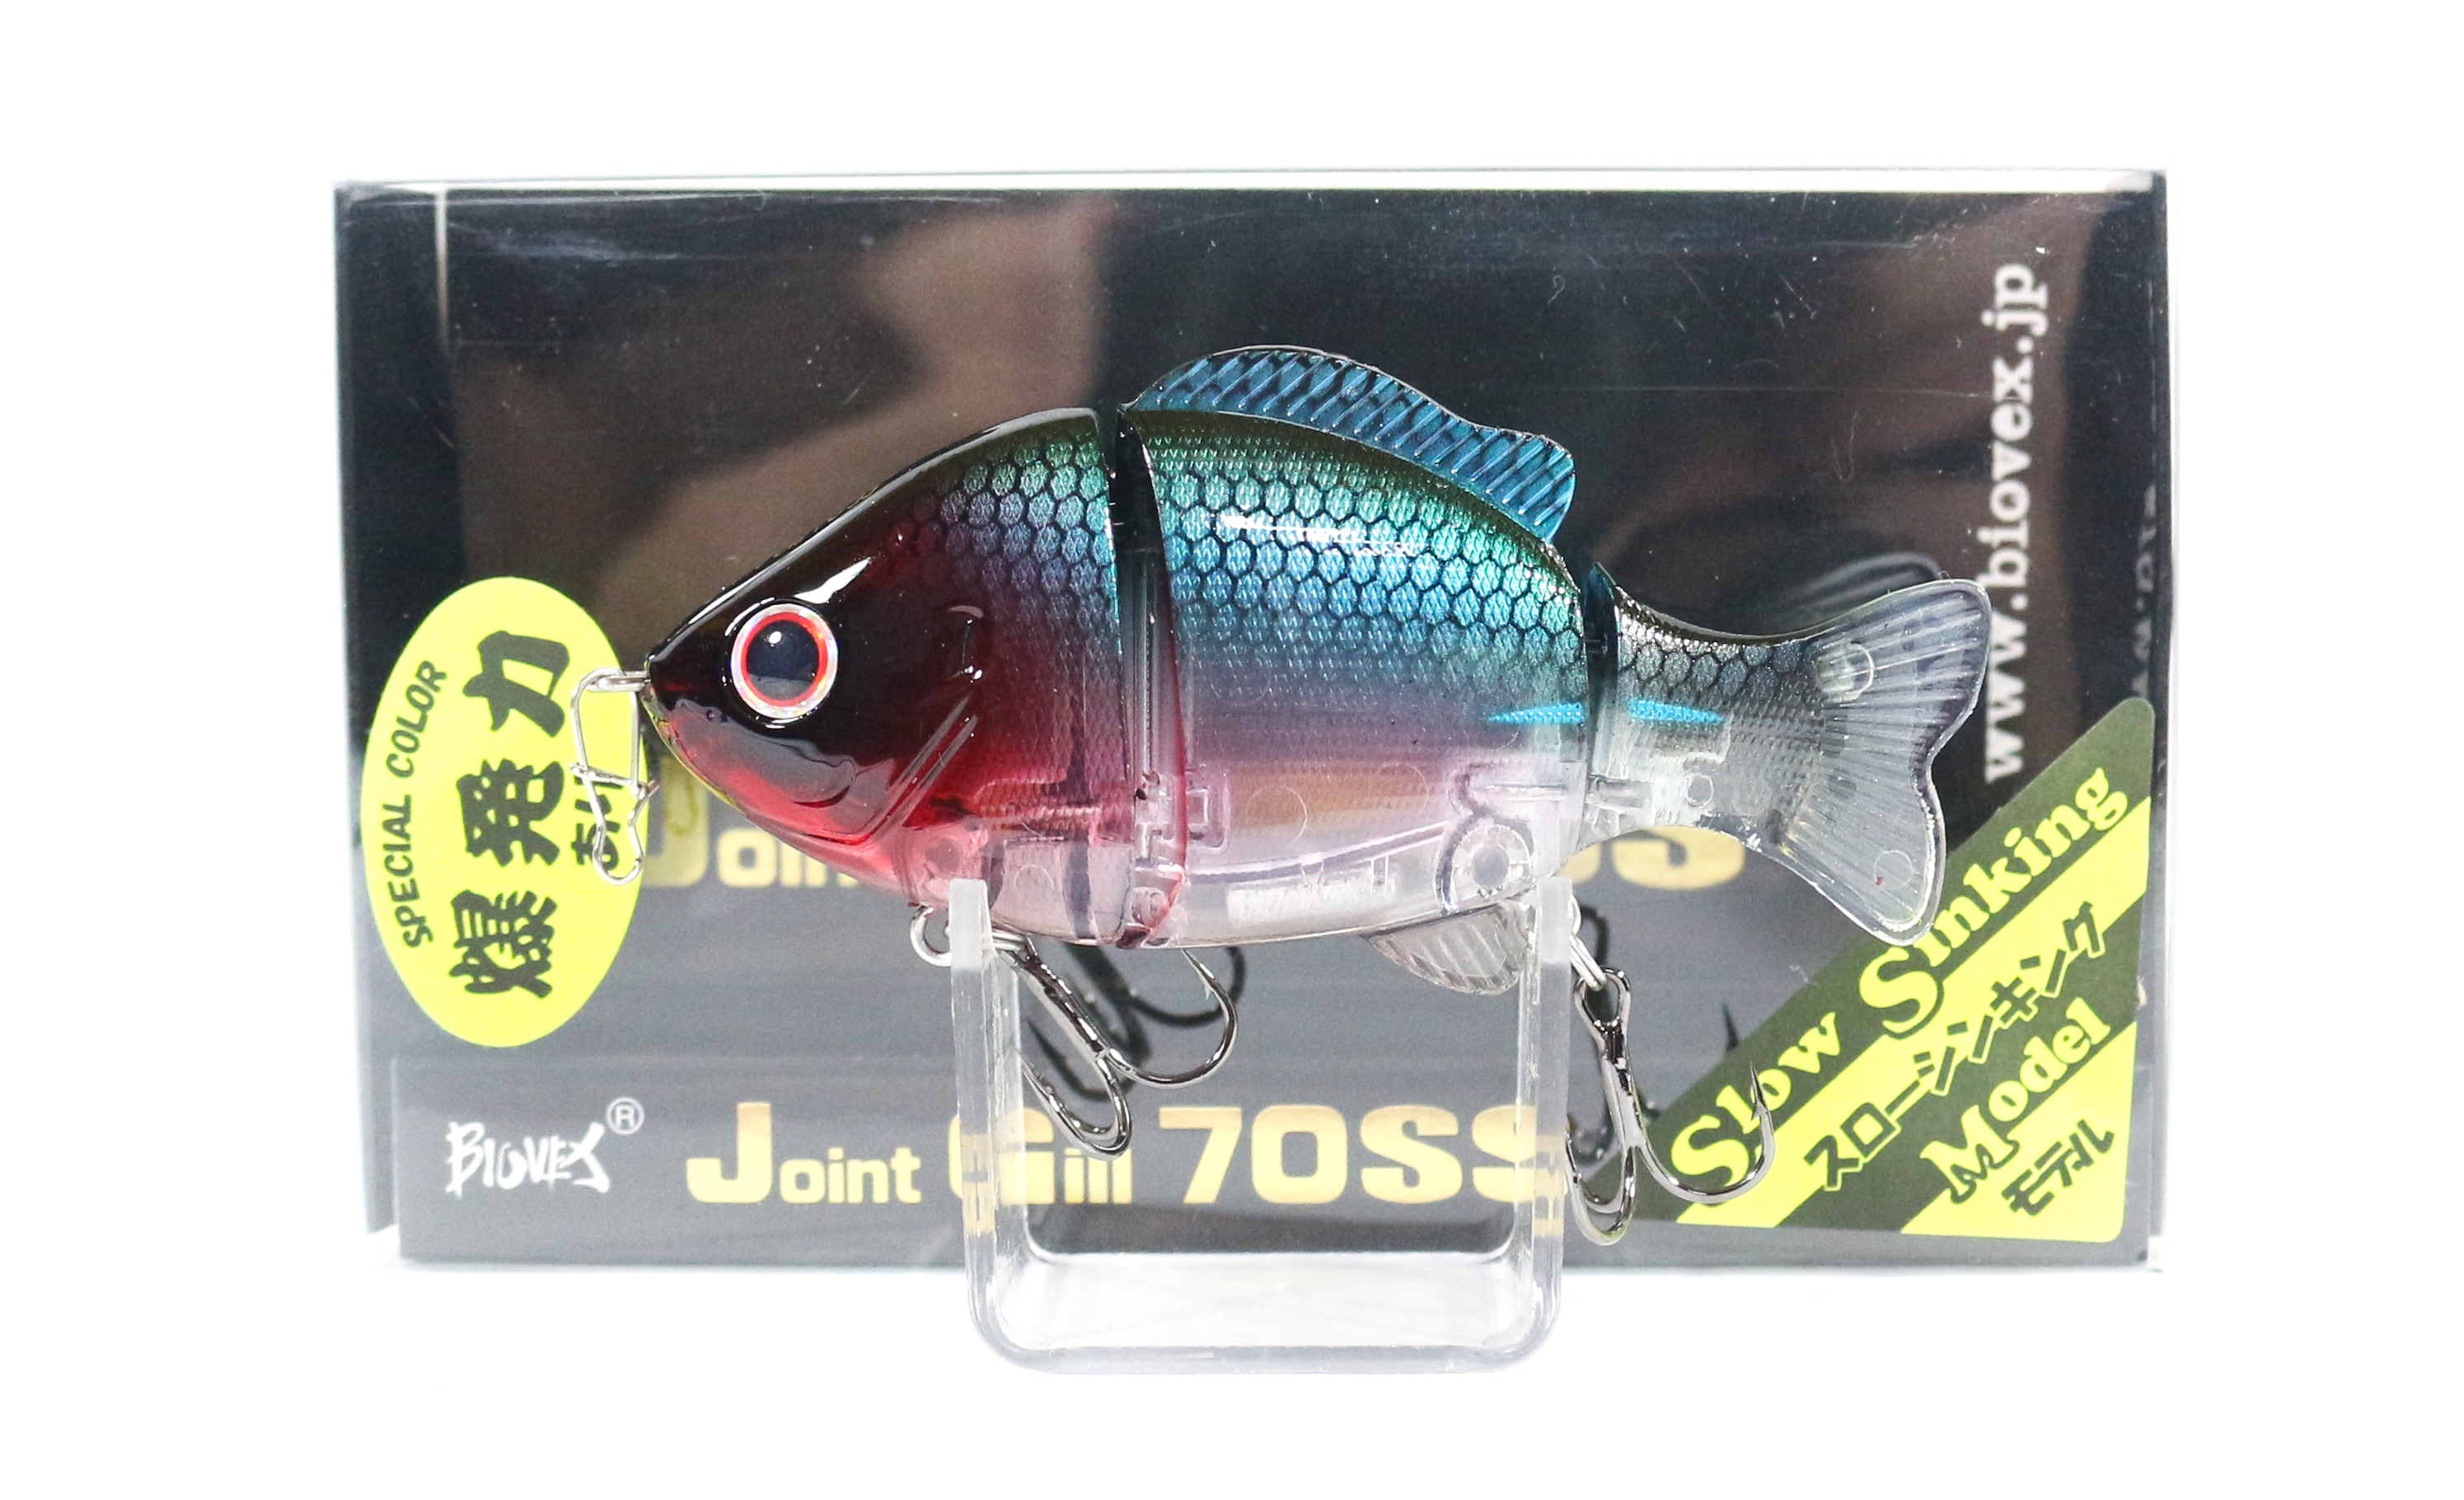 Biovex Joint Gill 70SS Flat Side Slow Sinking Lure 79 (4373)